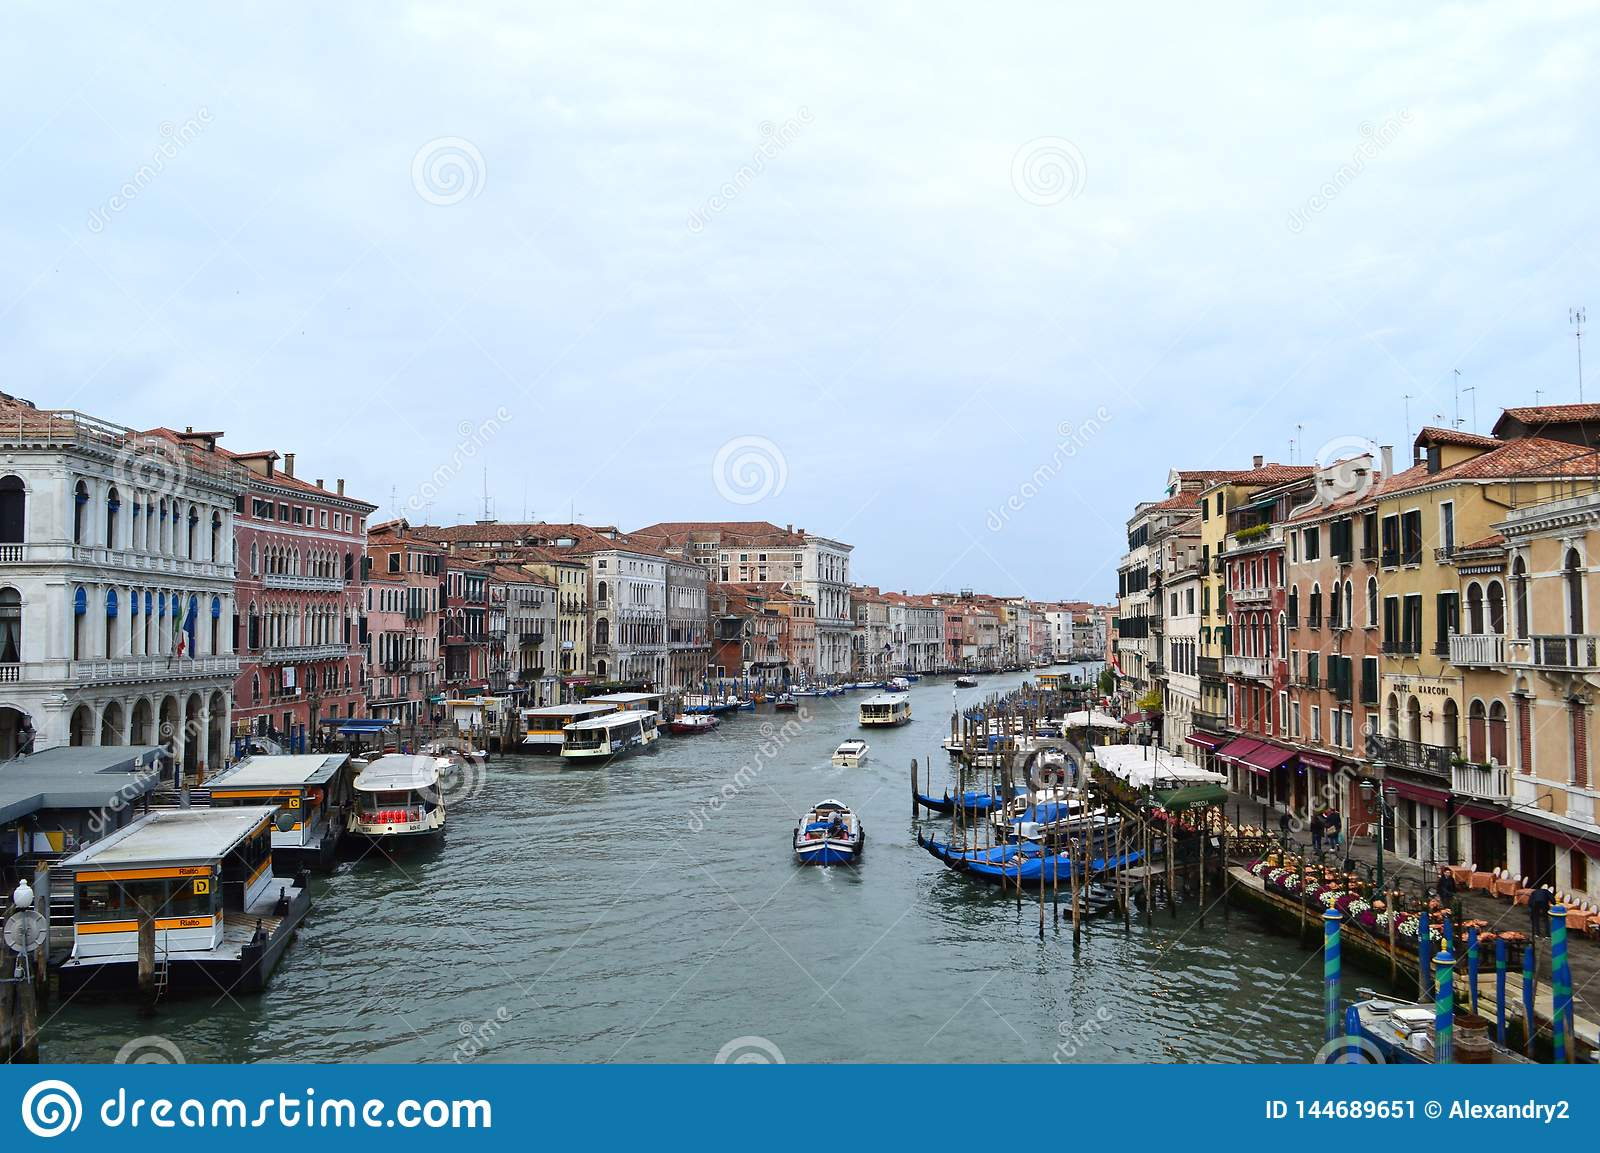 View of Grand canal - Venice, the queen of the Adriatic